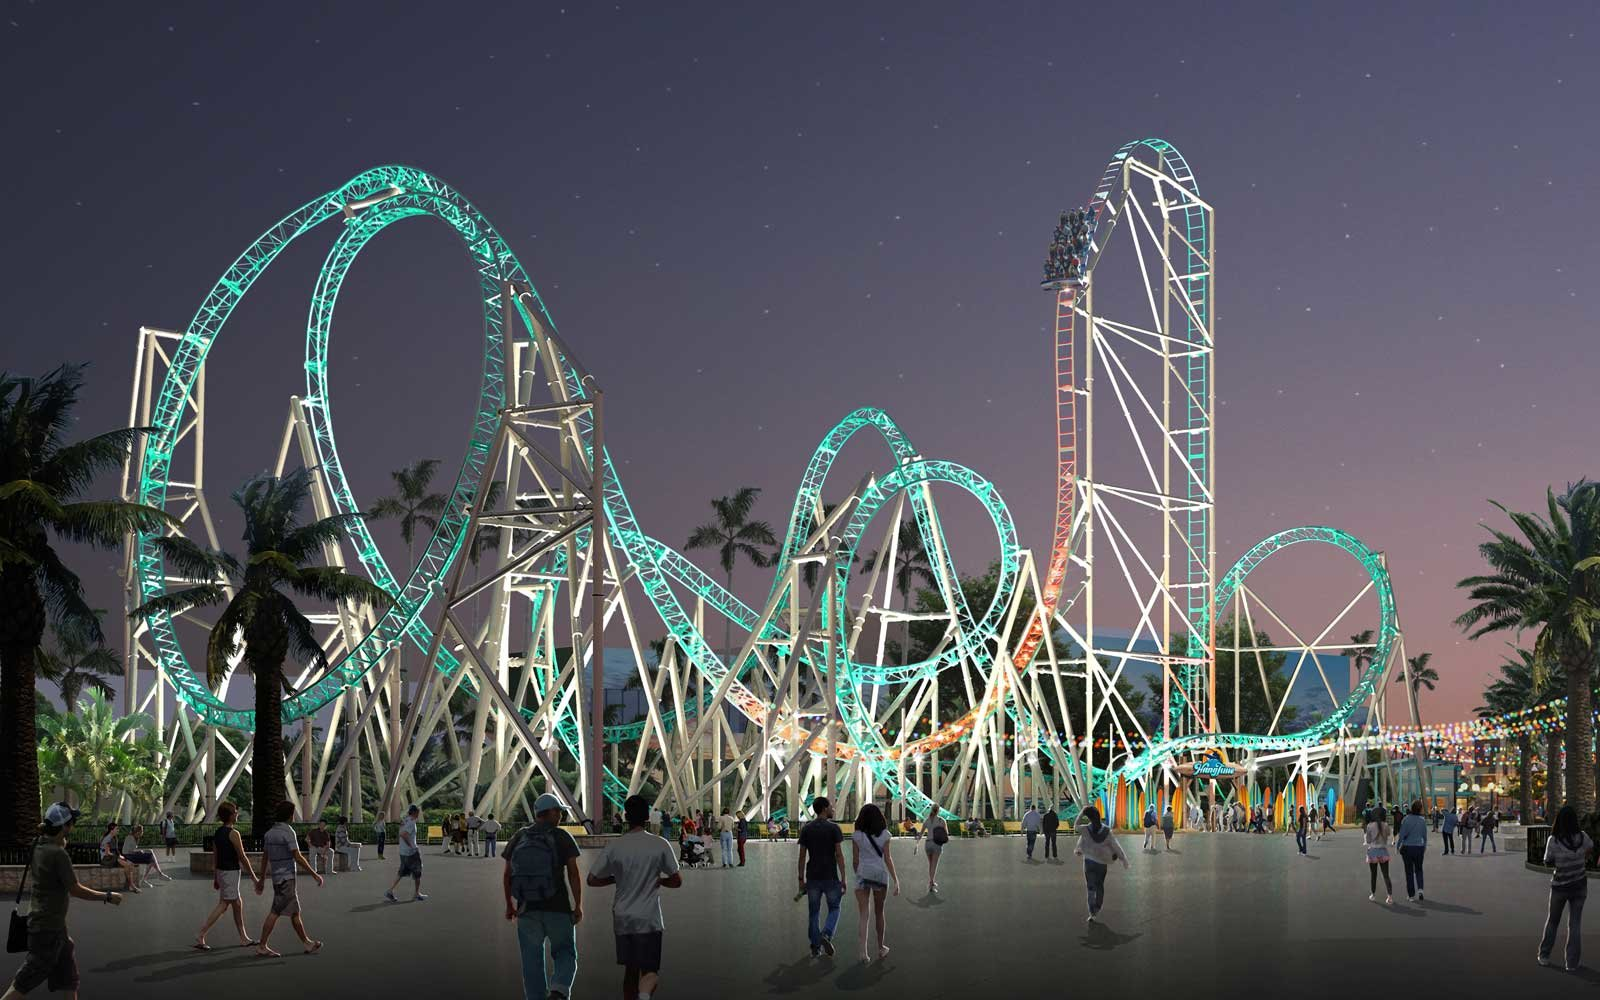 Rendering of the Hang Time dive coaster coming to Knott's Berry Farm in 2018